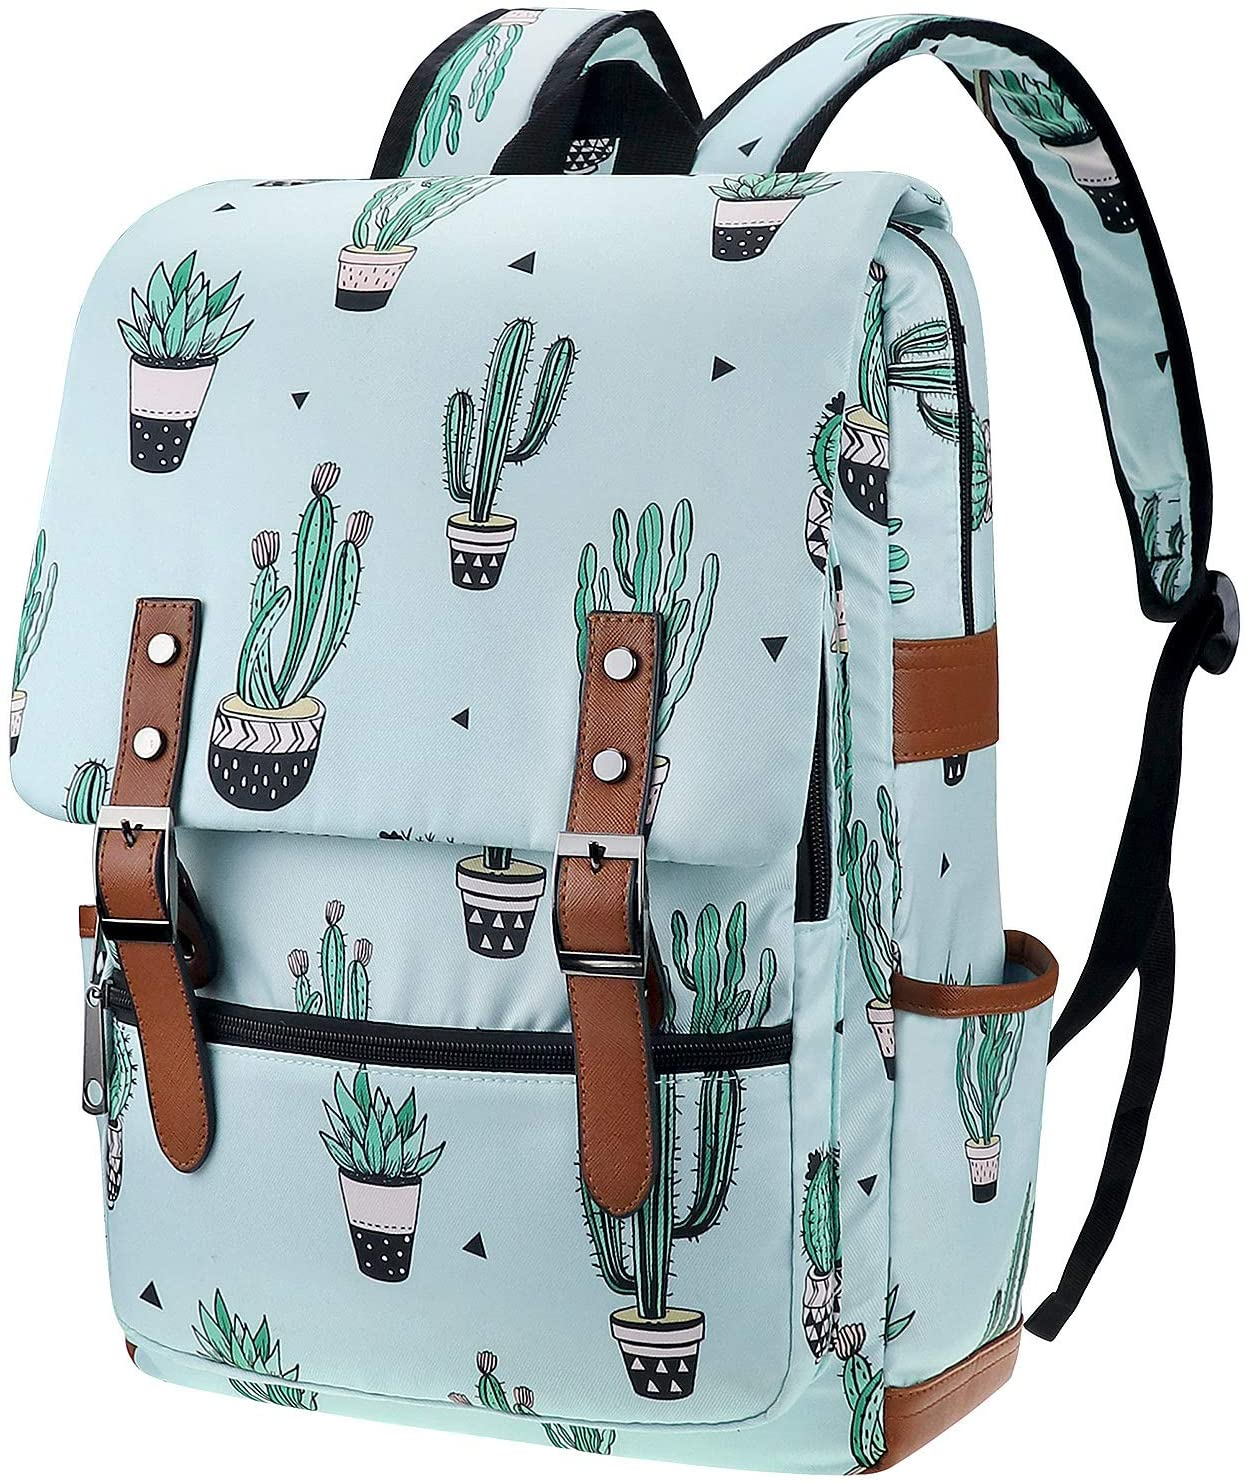 Cactus Laptop Backpack for Girls Women, College School Bookbags for Teenagers